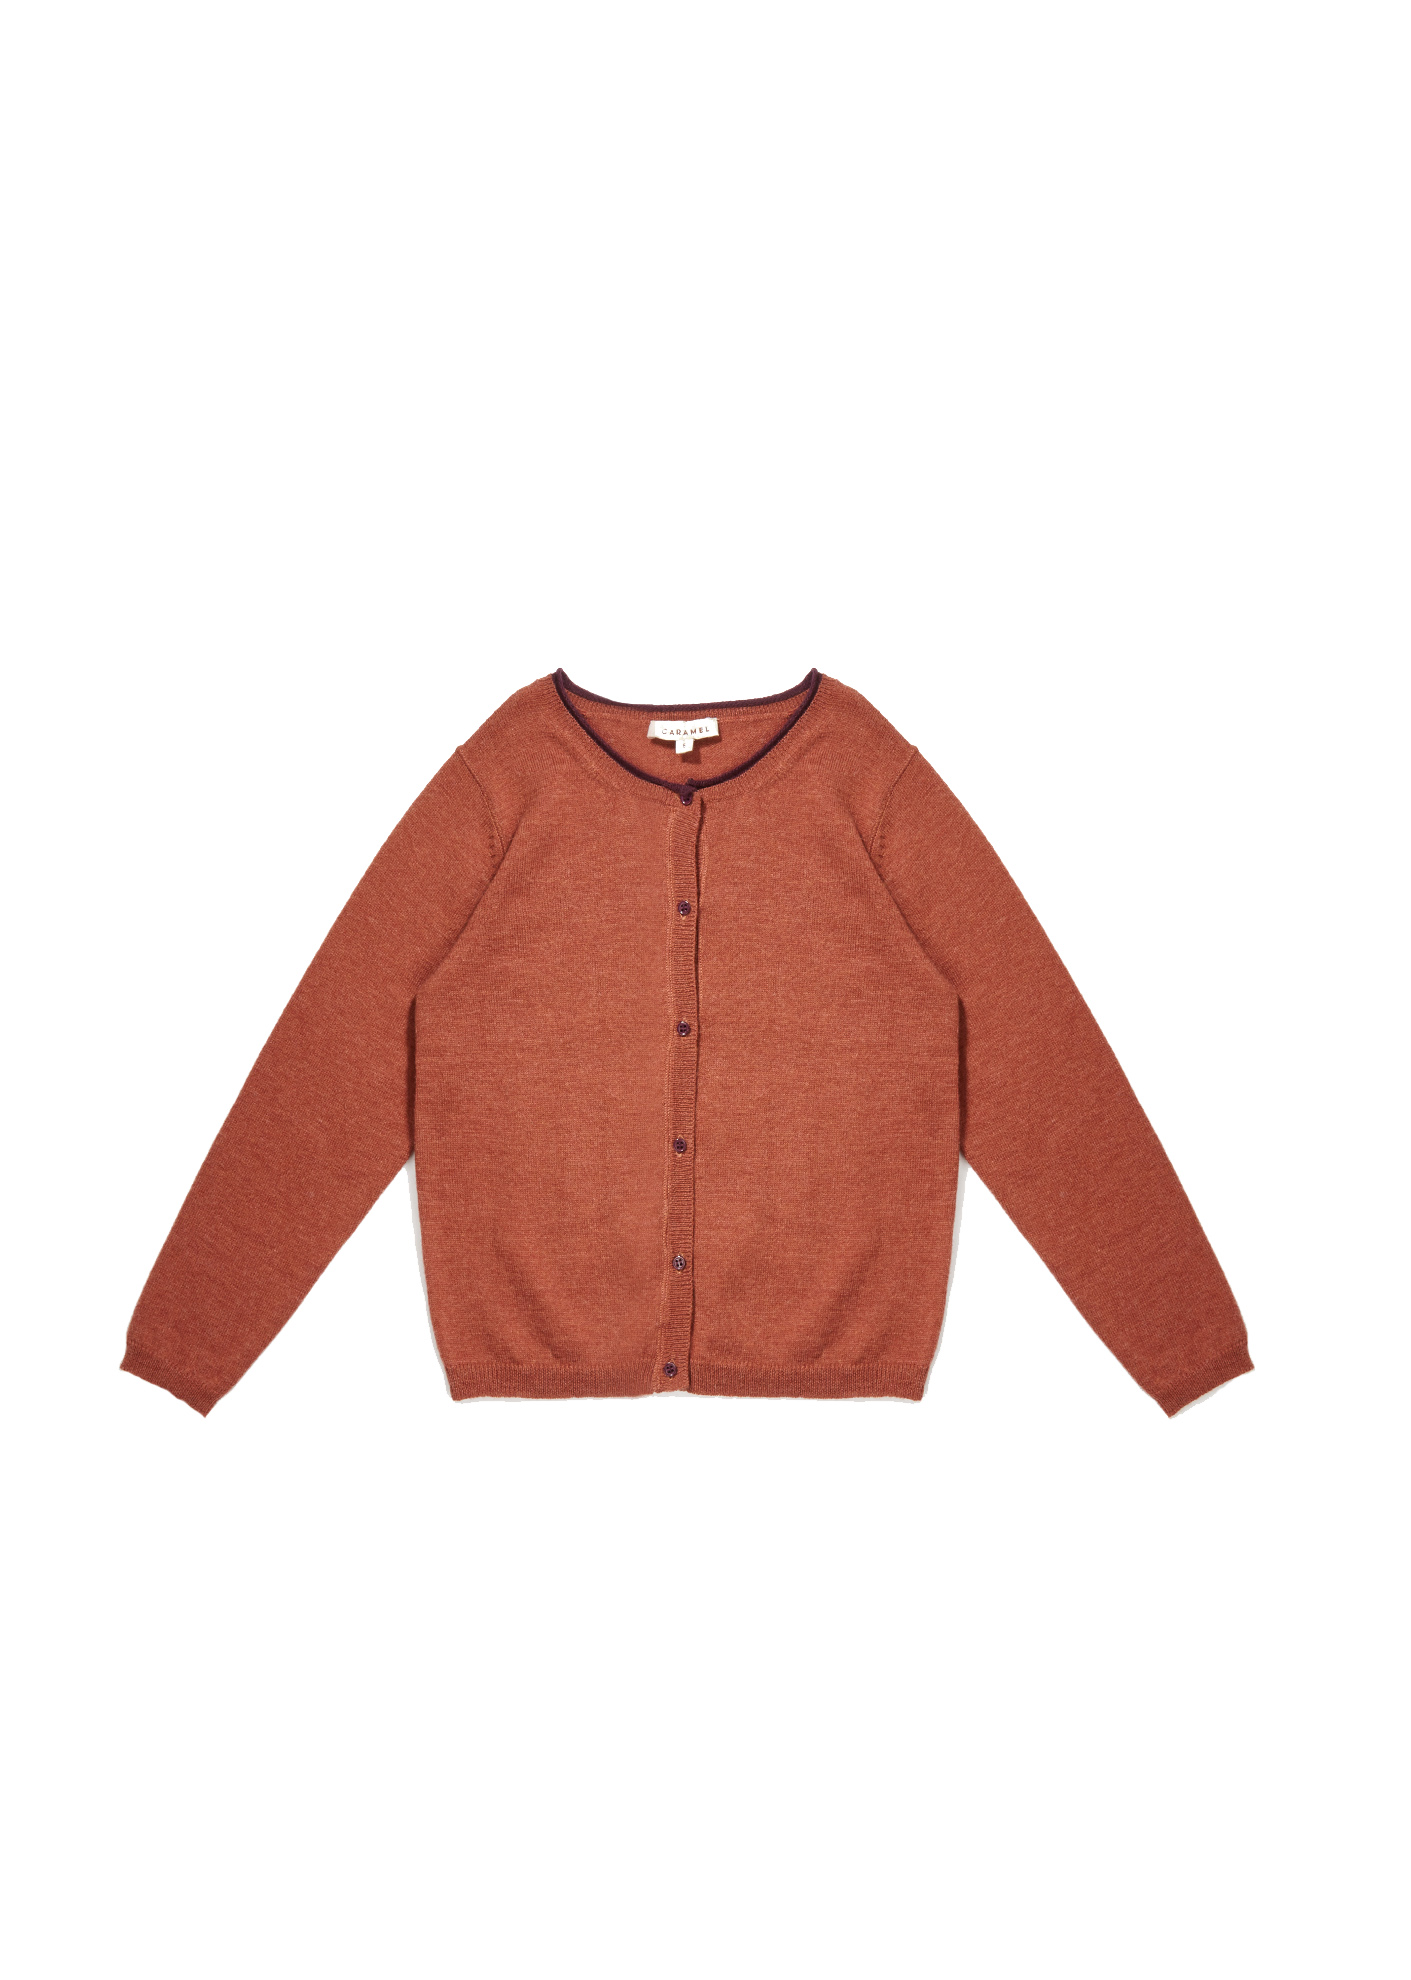 Caramel Red - Hazlewood Cardigan - Clothing